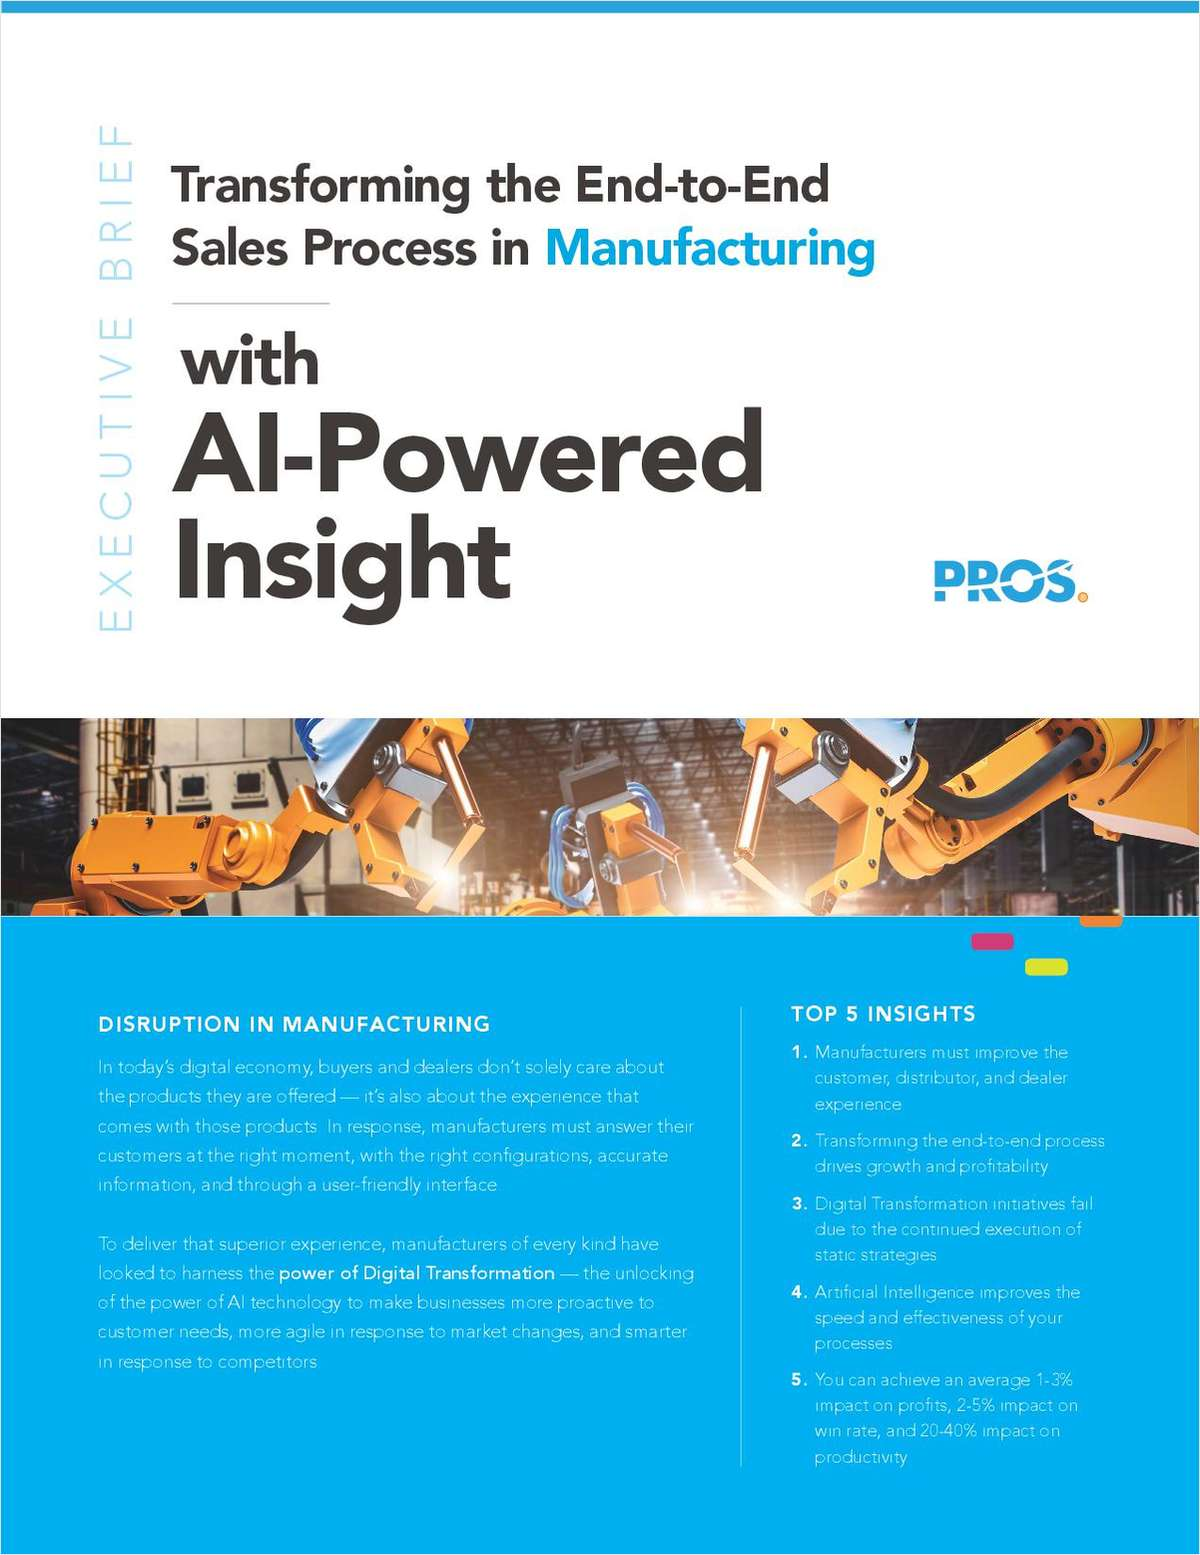 Transforming the End-to-End Sales Process in Manufacturing with AI-Powered Insight